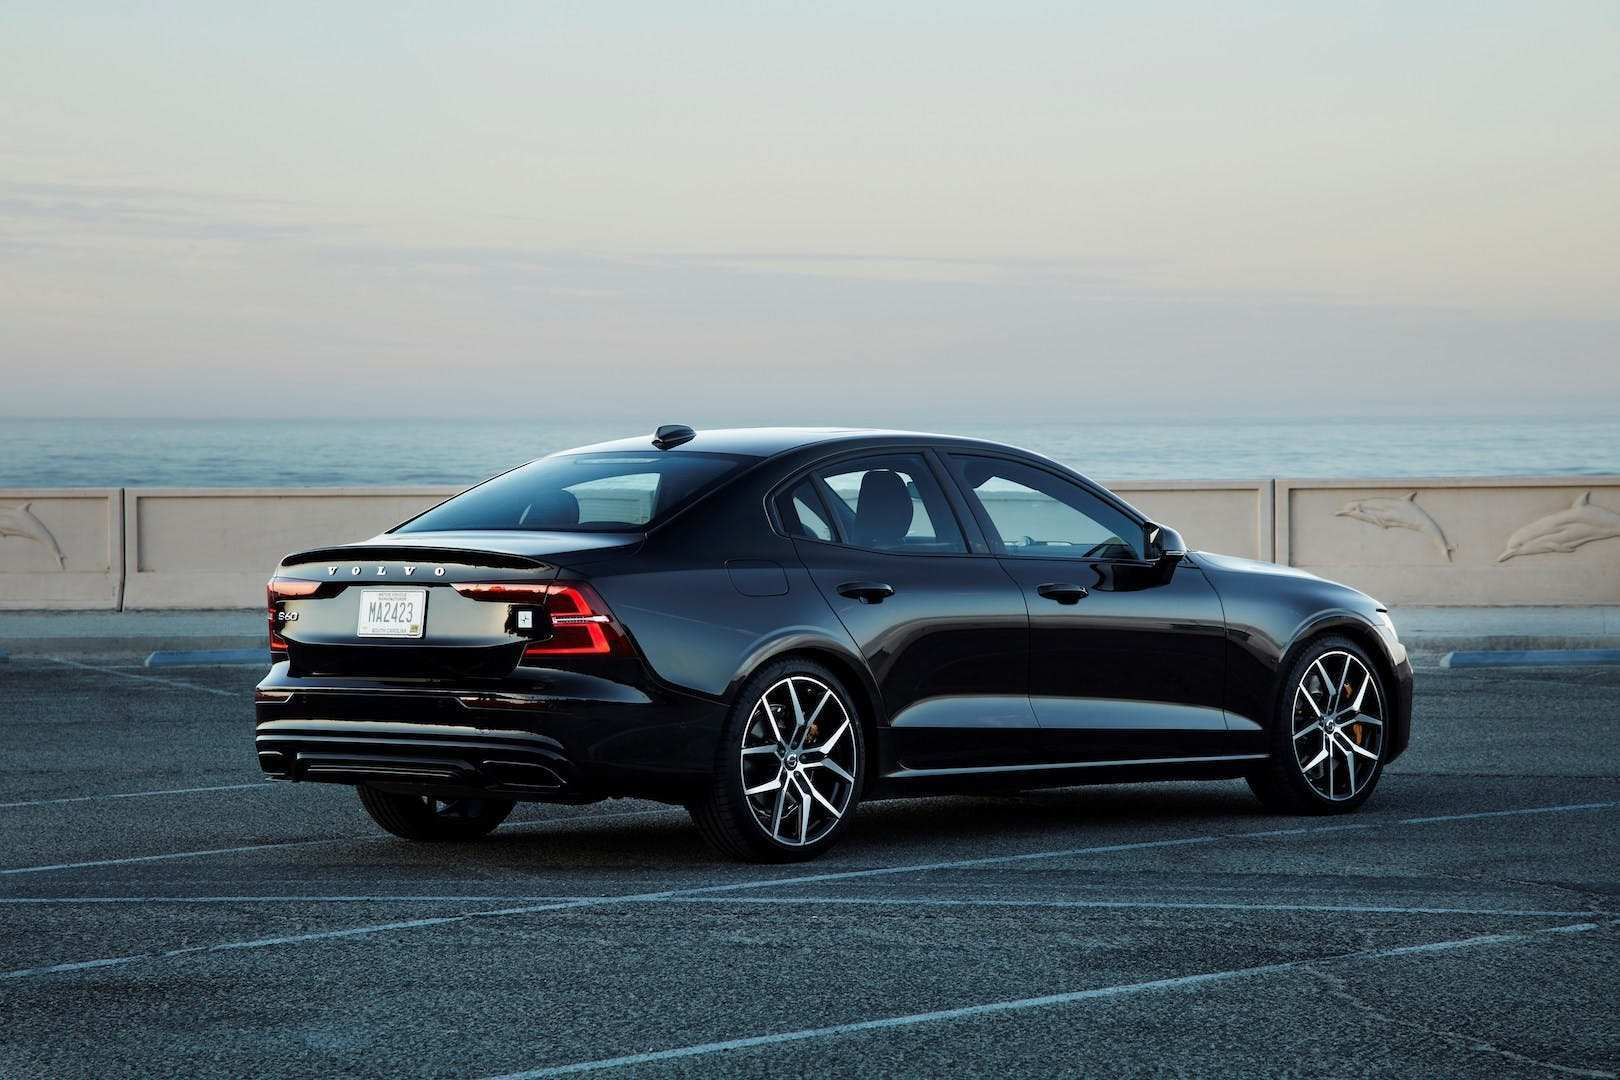 84 All New S60 Volvo 2019 Specs And Review